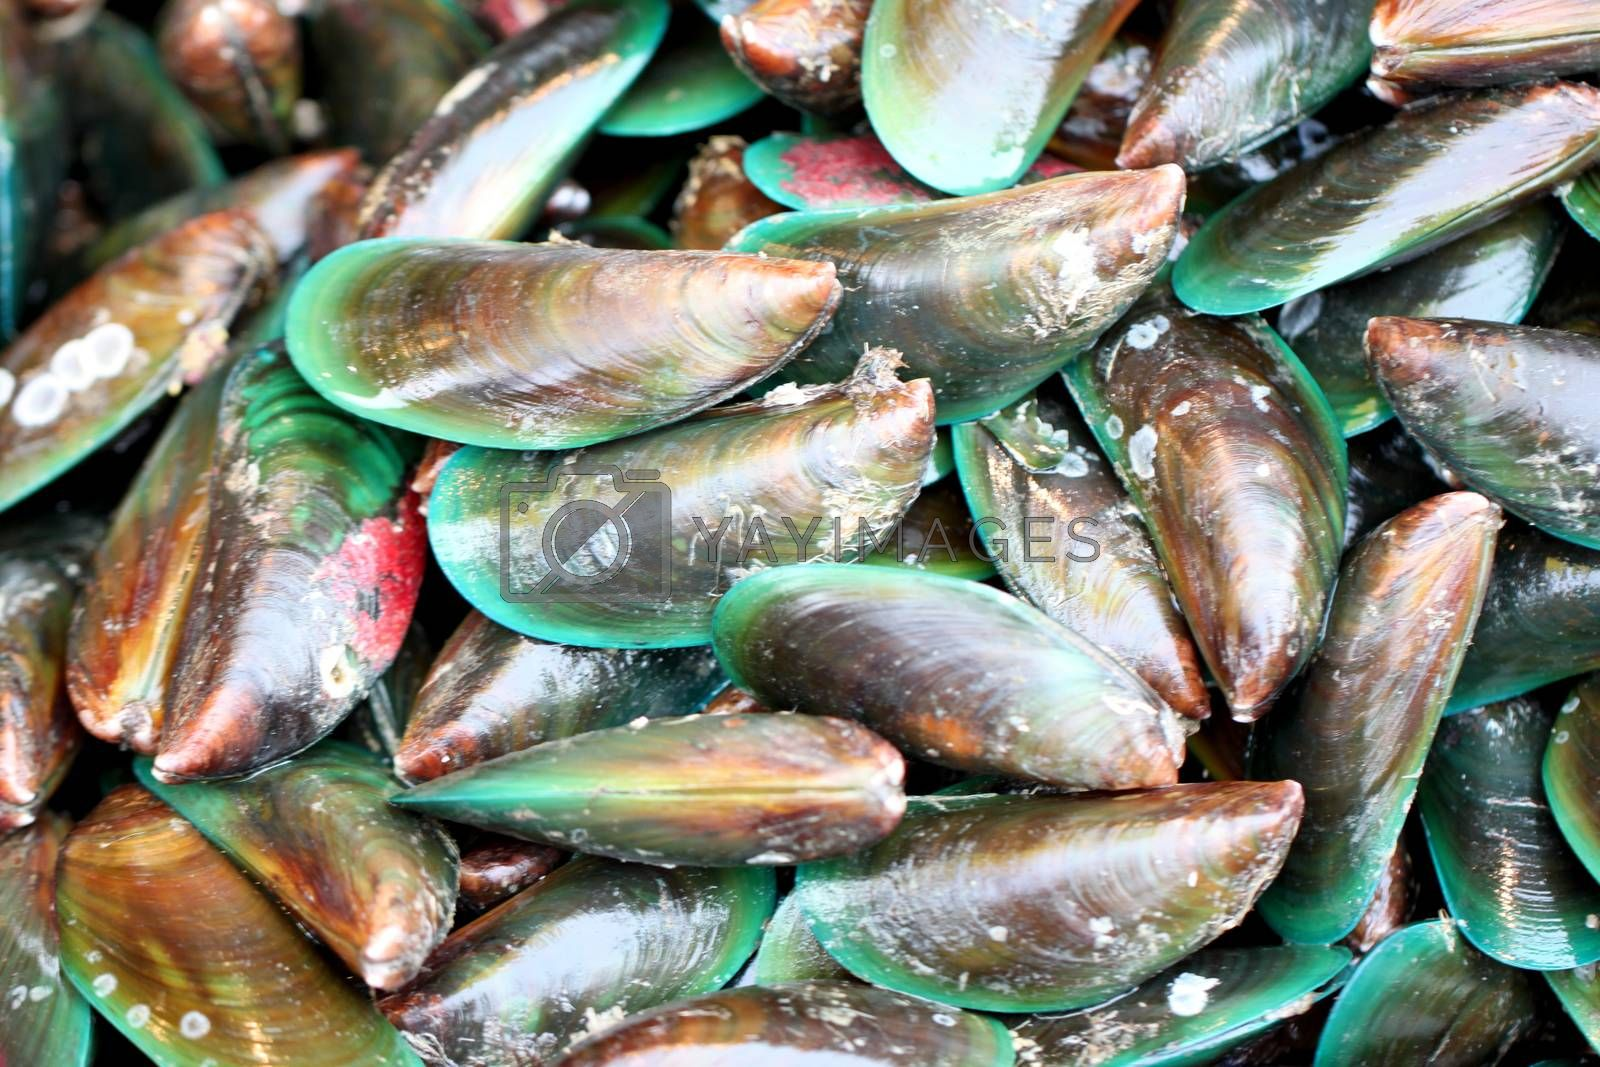 green mussel in seafood market. by PiyaPhoto